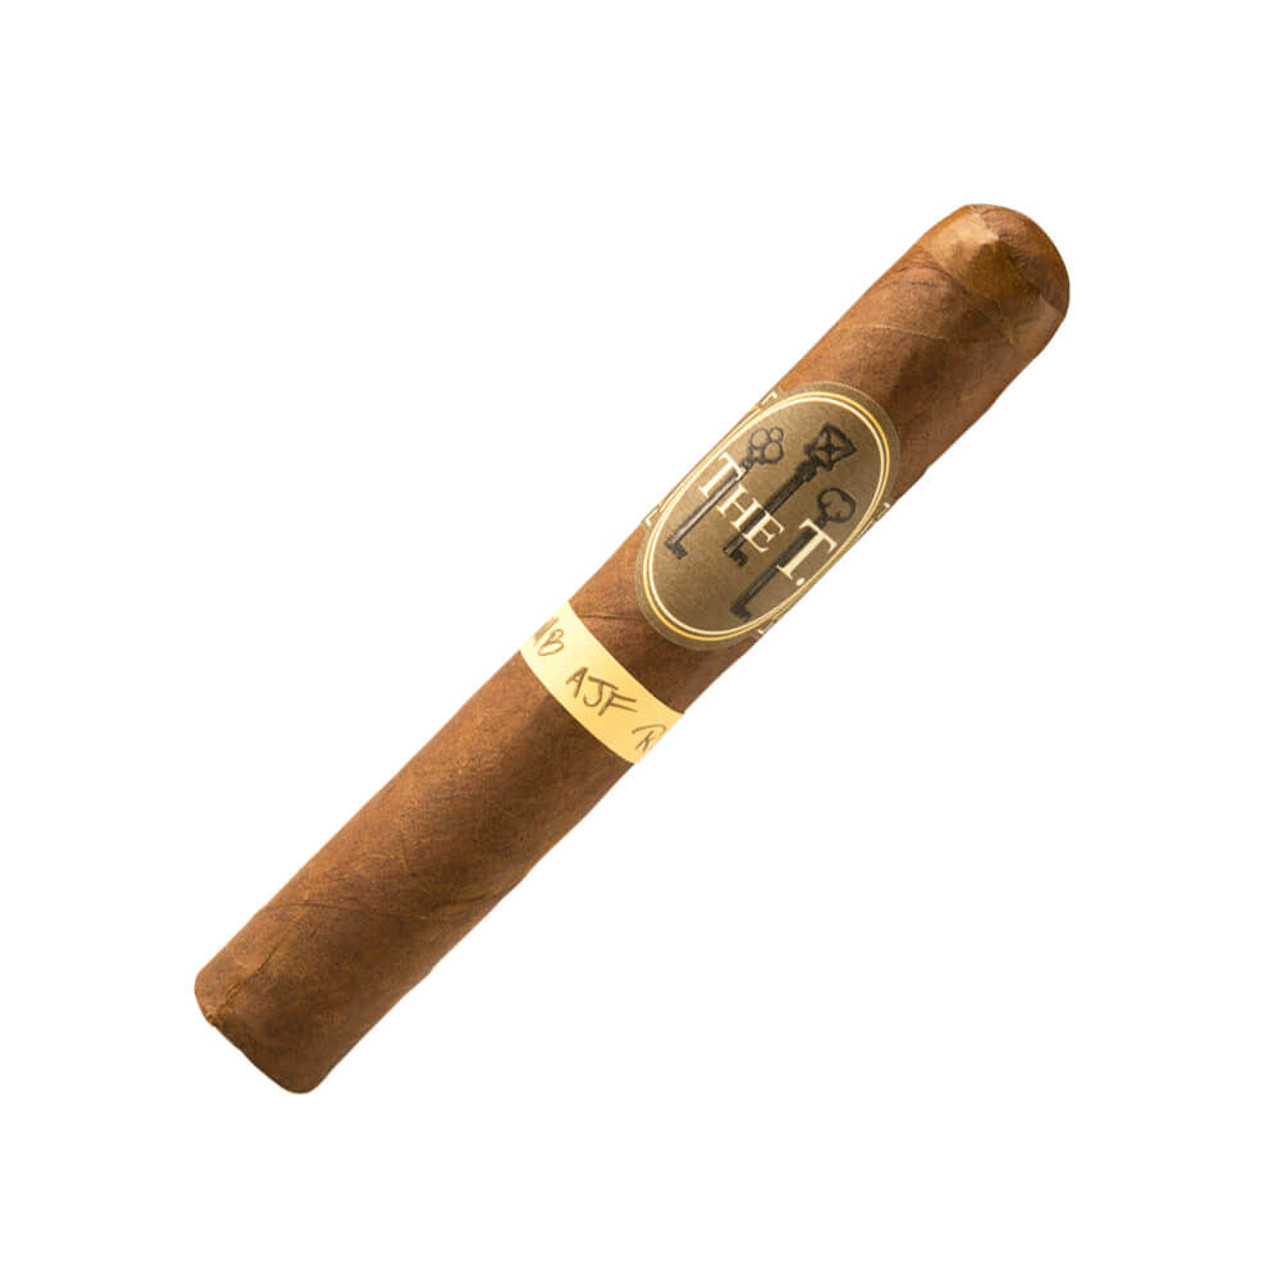 Caldwell The T. Sun Grown Double Robusto Cigars - 5.5 x 54 (Box of 20)